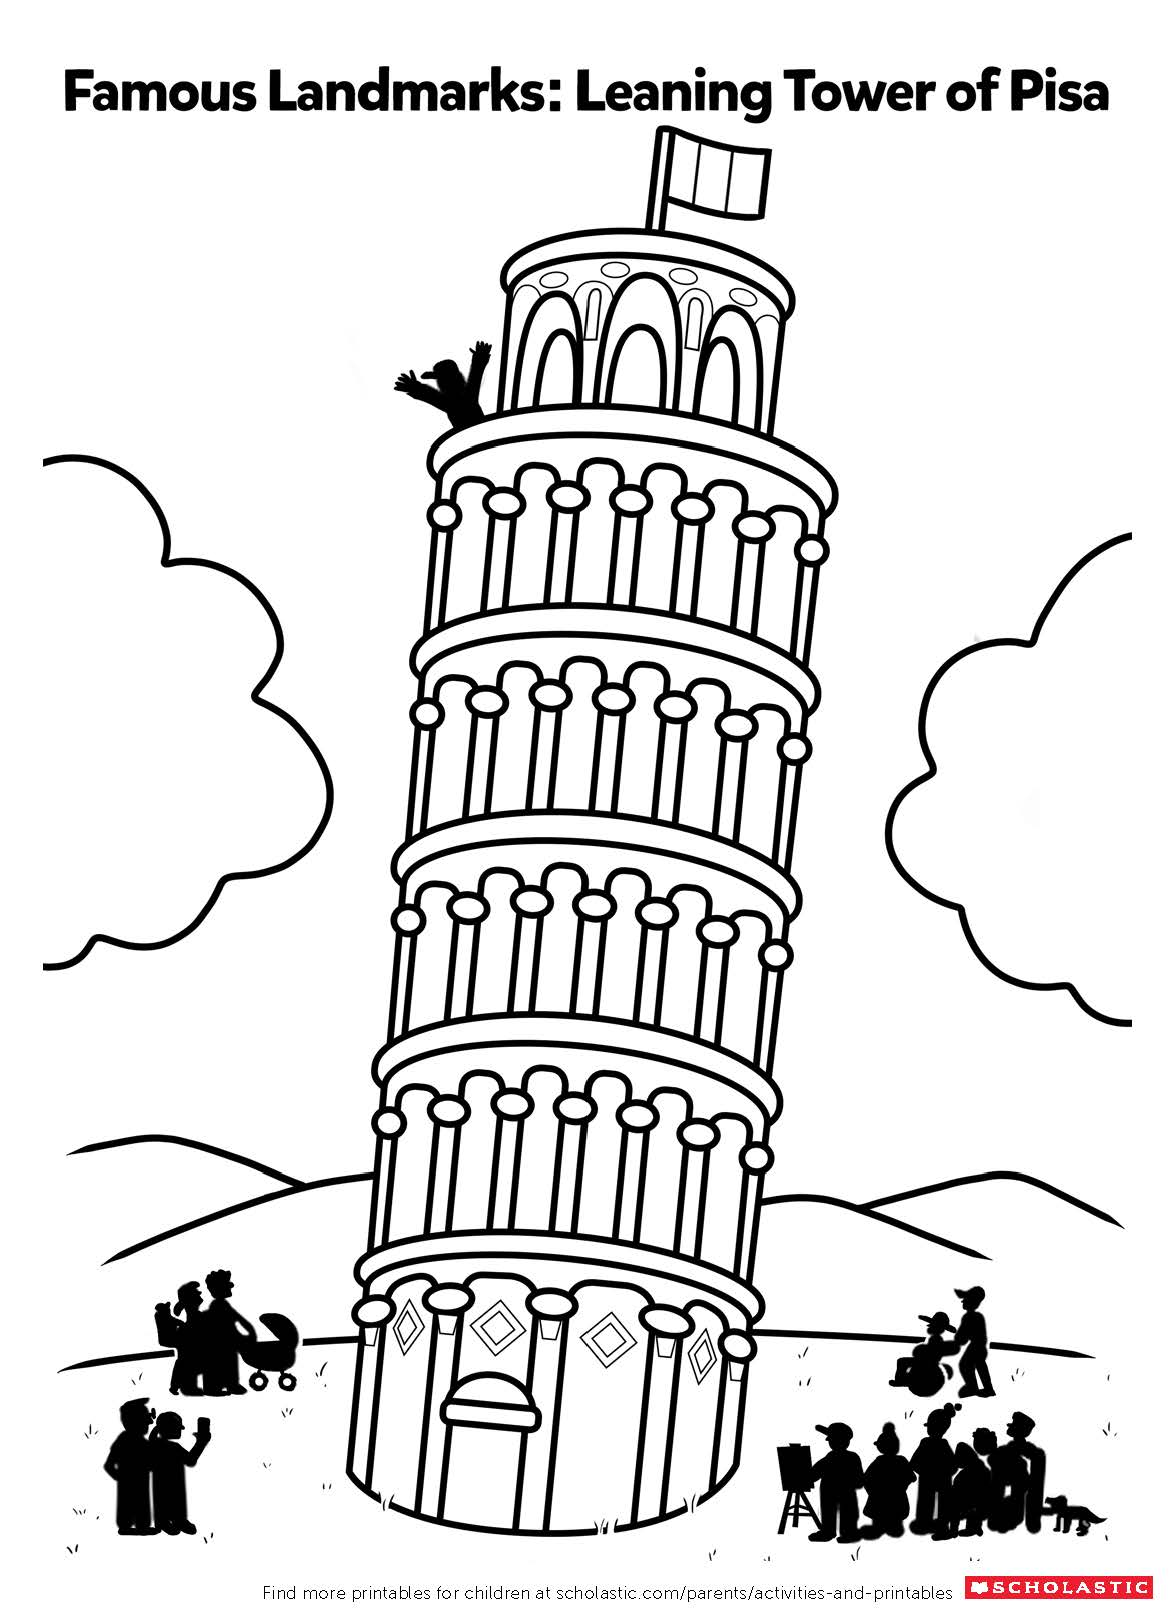 Color In The Leaning Tower Of Pisa